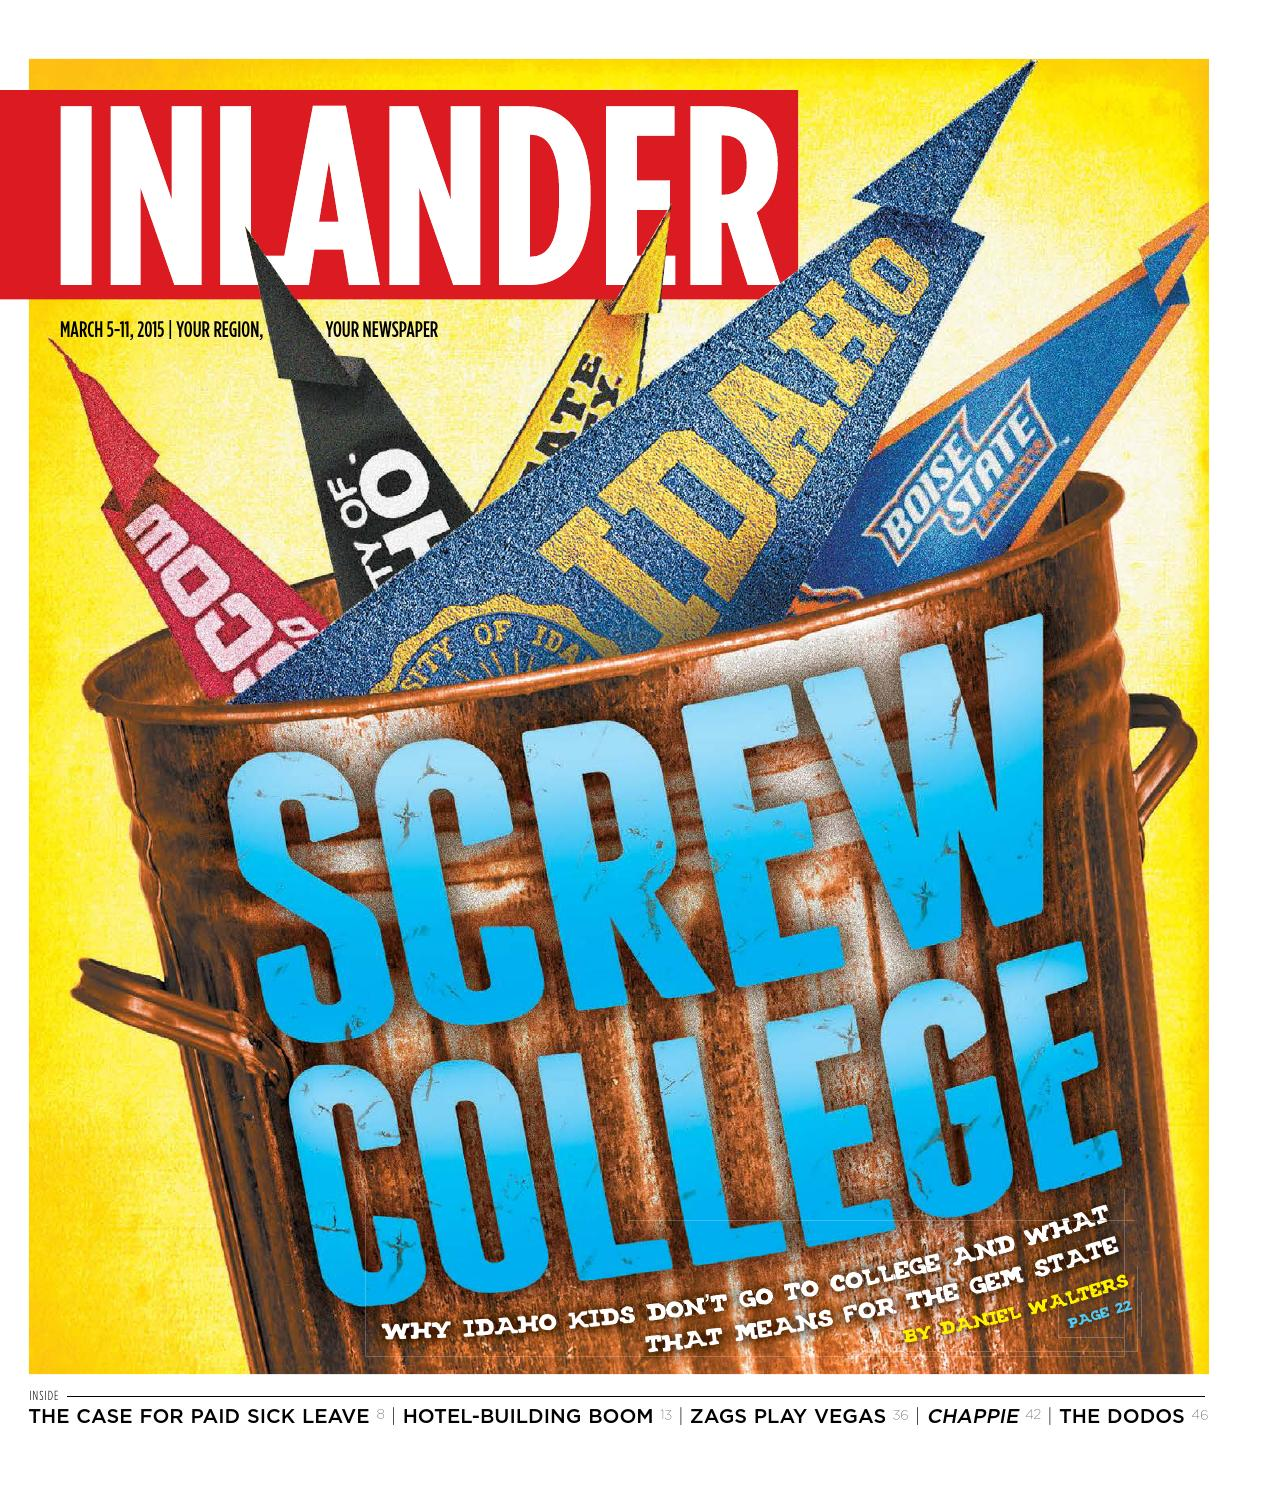 34308fdef1f Inlander 03 05 2015 by The Inlander - issuu